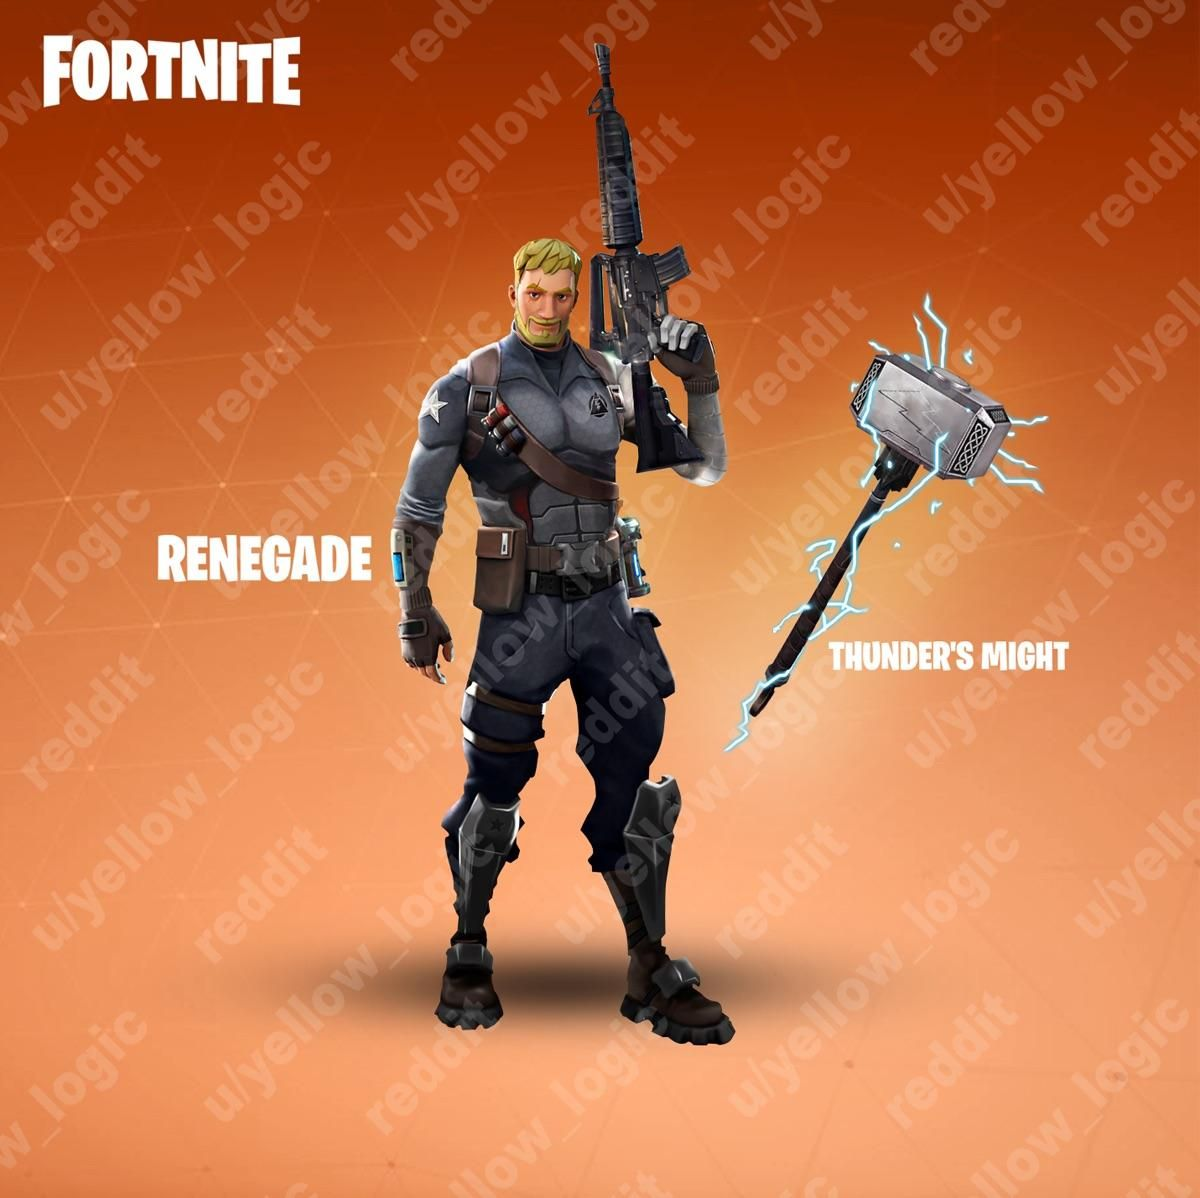 Reddit Halloween Brooklyn 2020 Skin Concept] Just a kid from Brooklyn. in 2020 | Fortnite, Combo